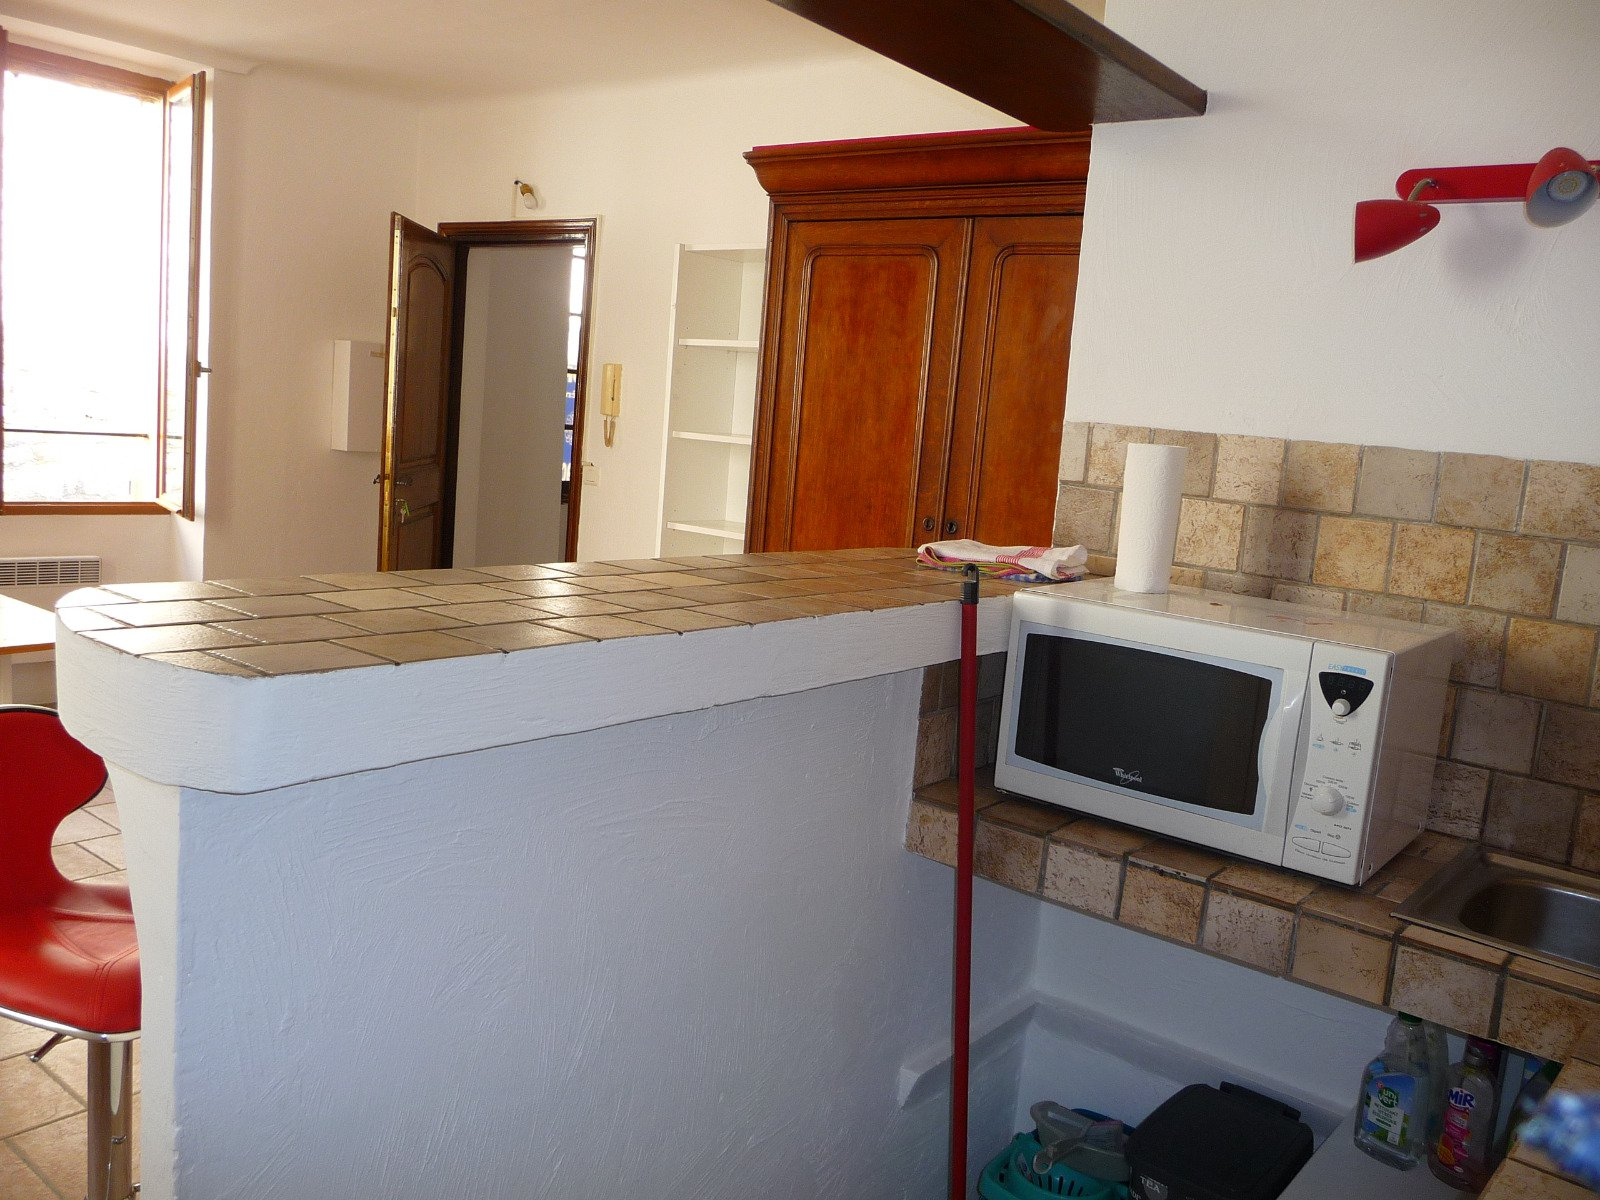 In the village of St. Paul, lovely bright studio, in very good condition,